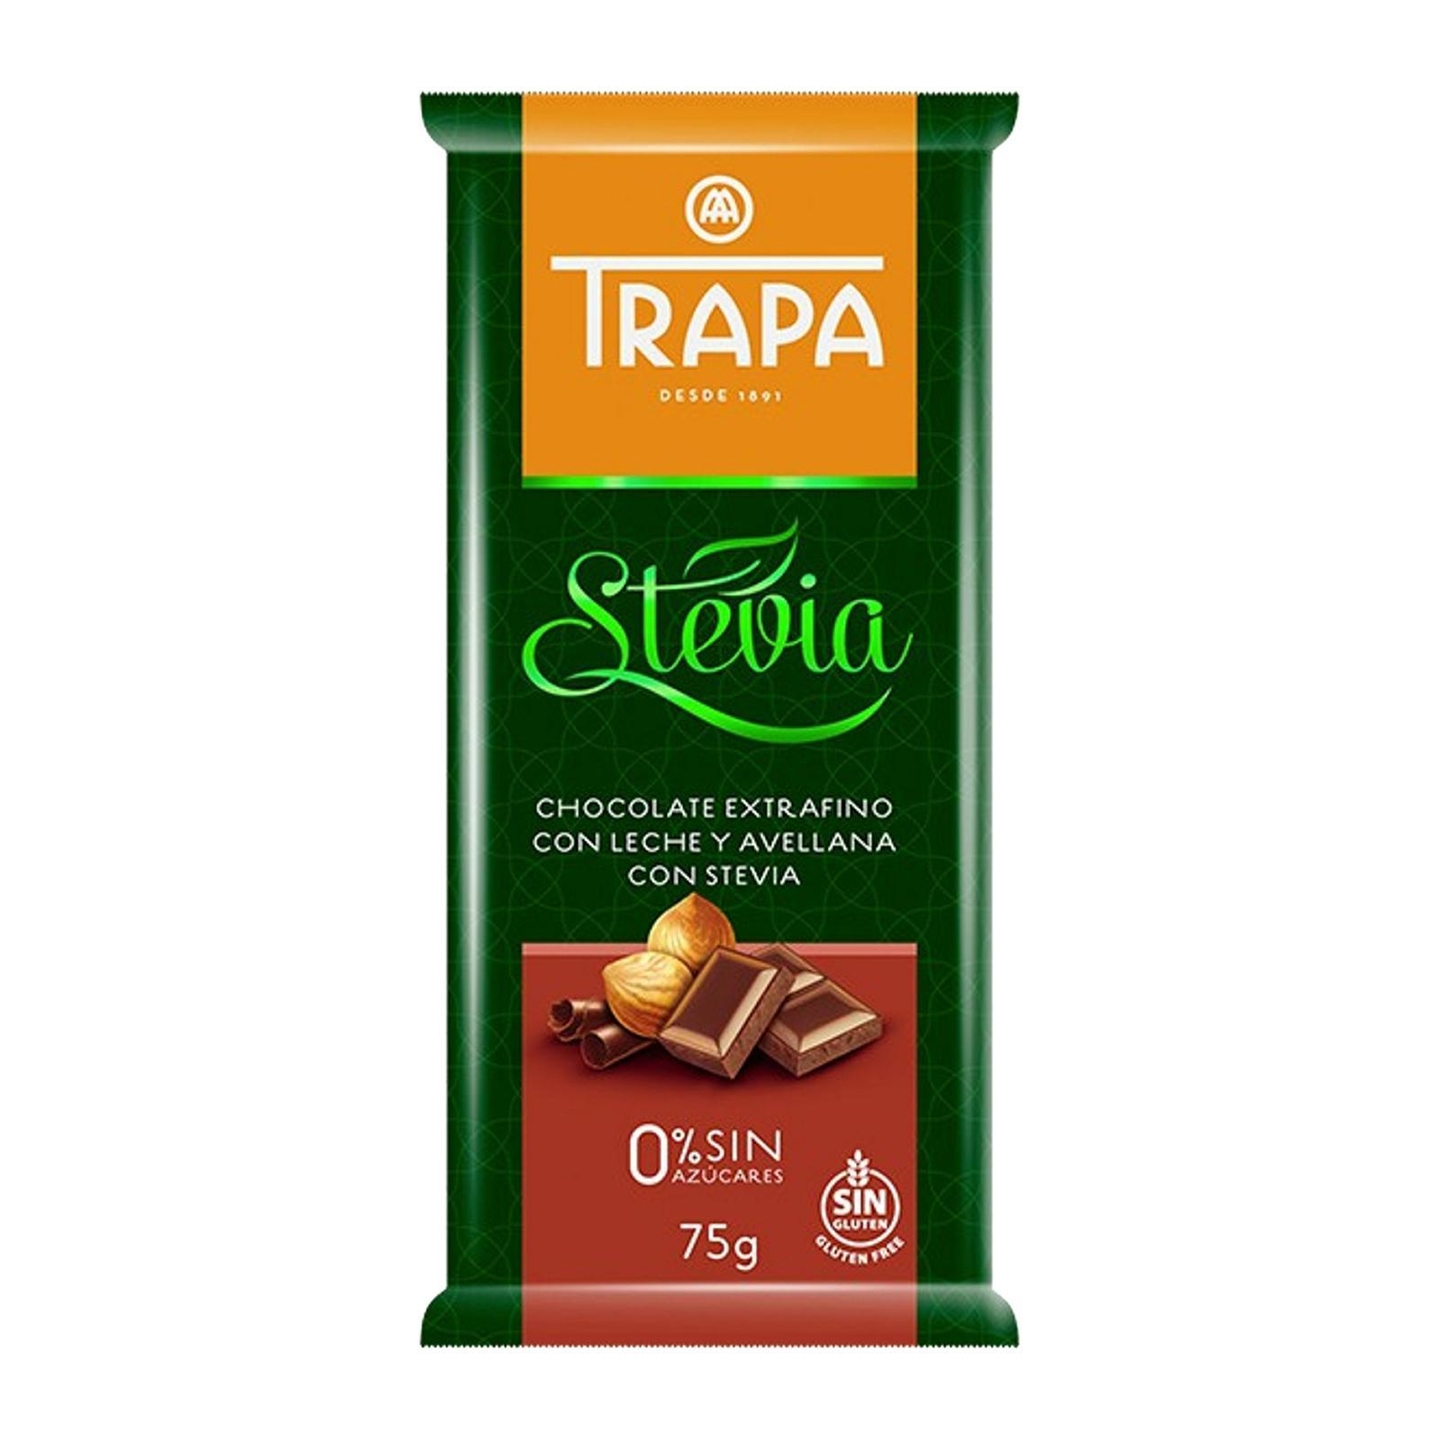 Trapa Sugar Free Hazelnut Milk Chocolate with Stevia - Gluten Free